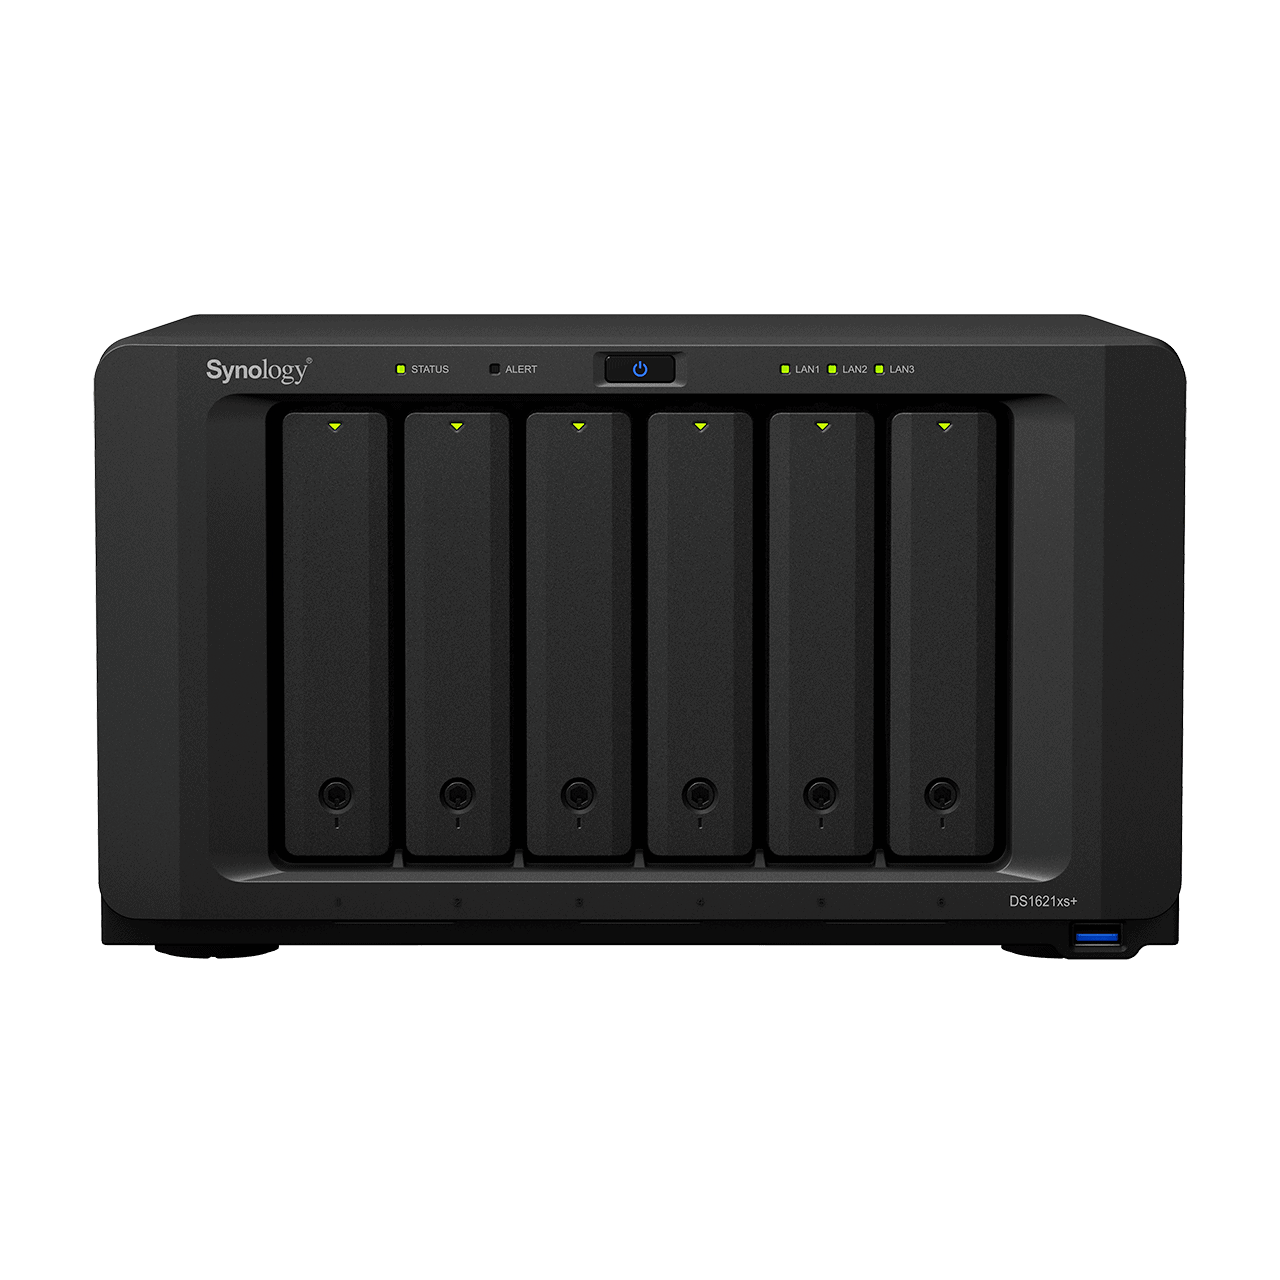 Synology DS1621xs NAS 3